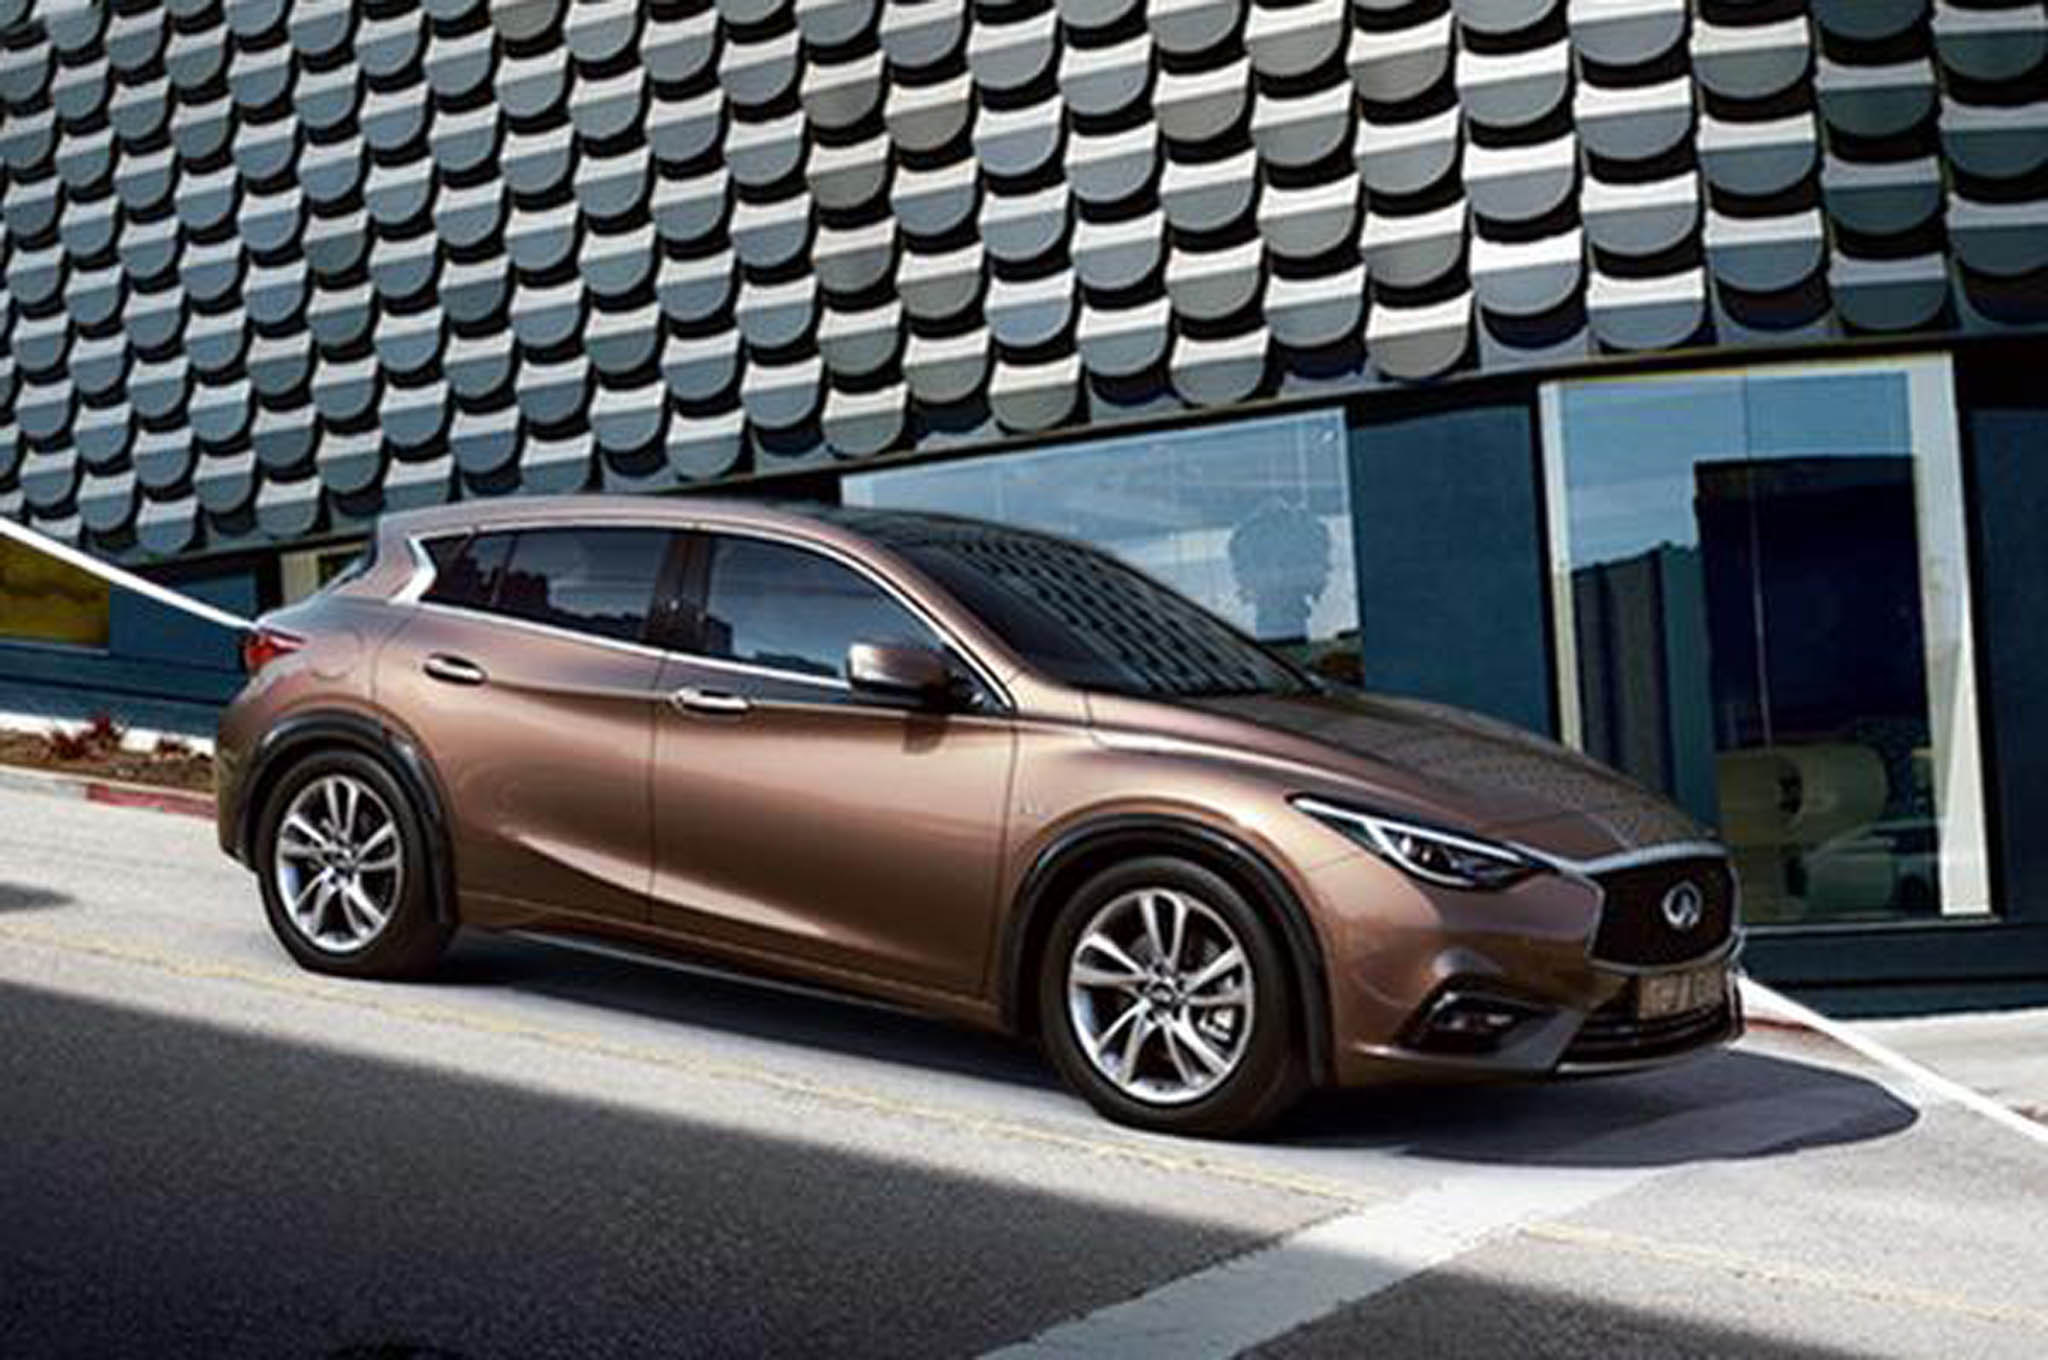 2017 infiniti q30 interior sports numerous mercedes benz touches. Black Bedroom Furniture Sets. Home Design Ideas